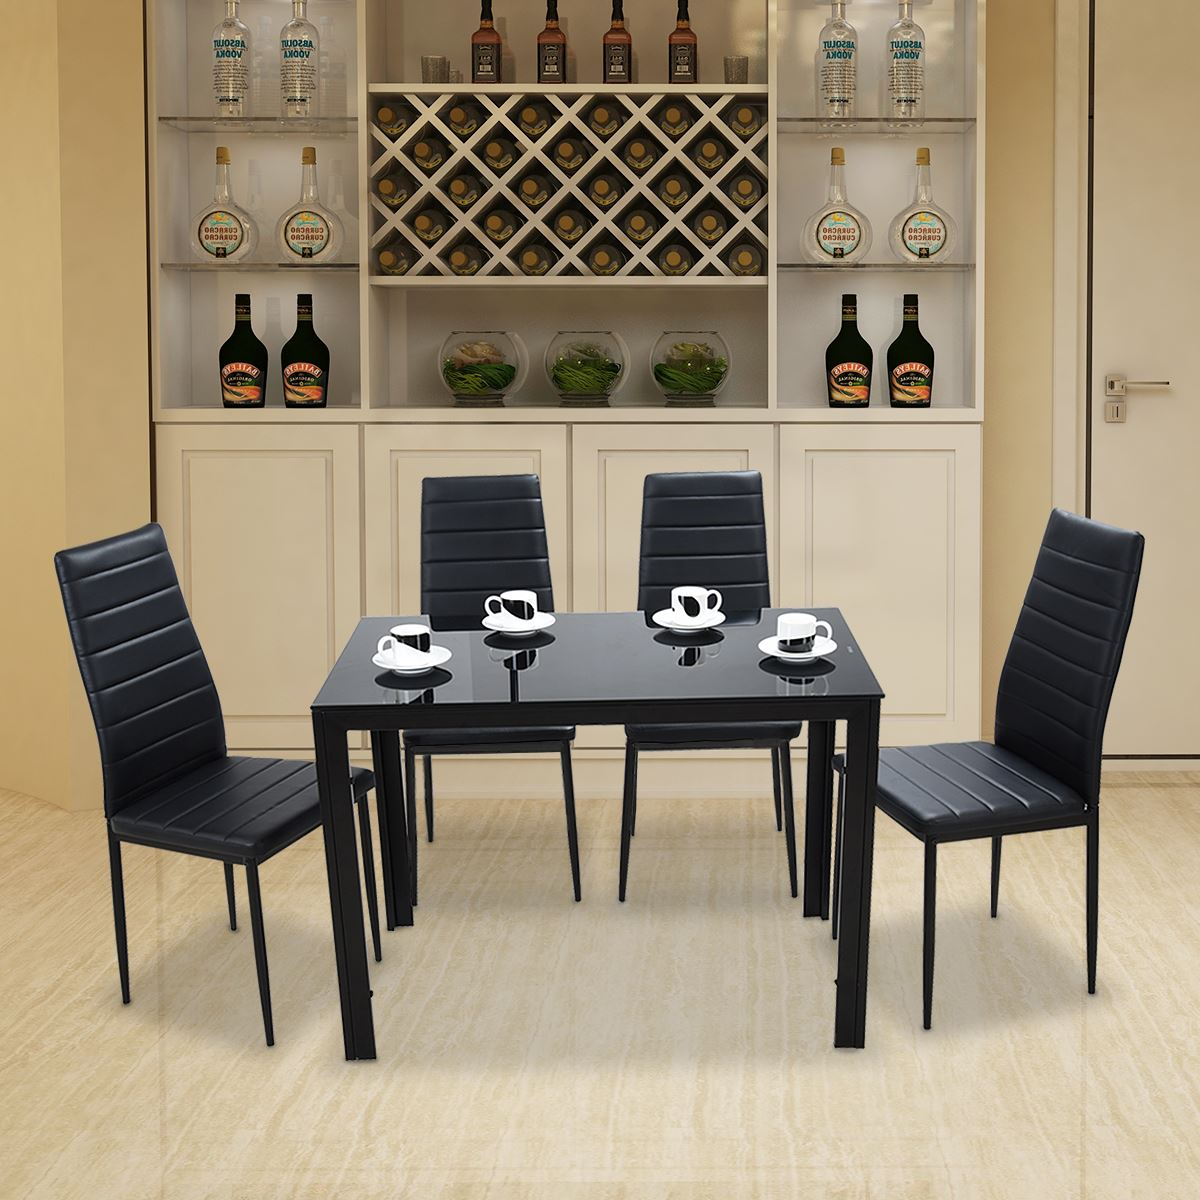 Admirable Panana Glass Dining Table Set With 4 6 Faux Leather Chairs Ibusinesslaw Wood Chair Design Ideas Ibusinesslaworg